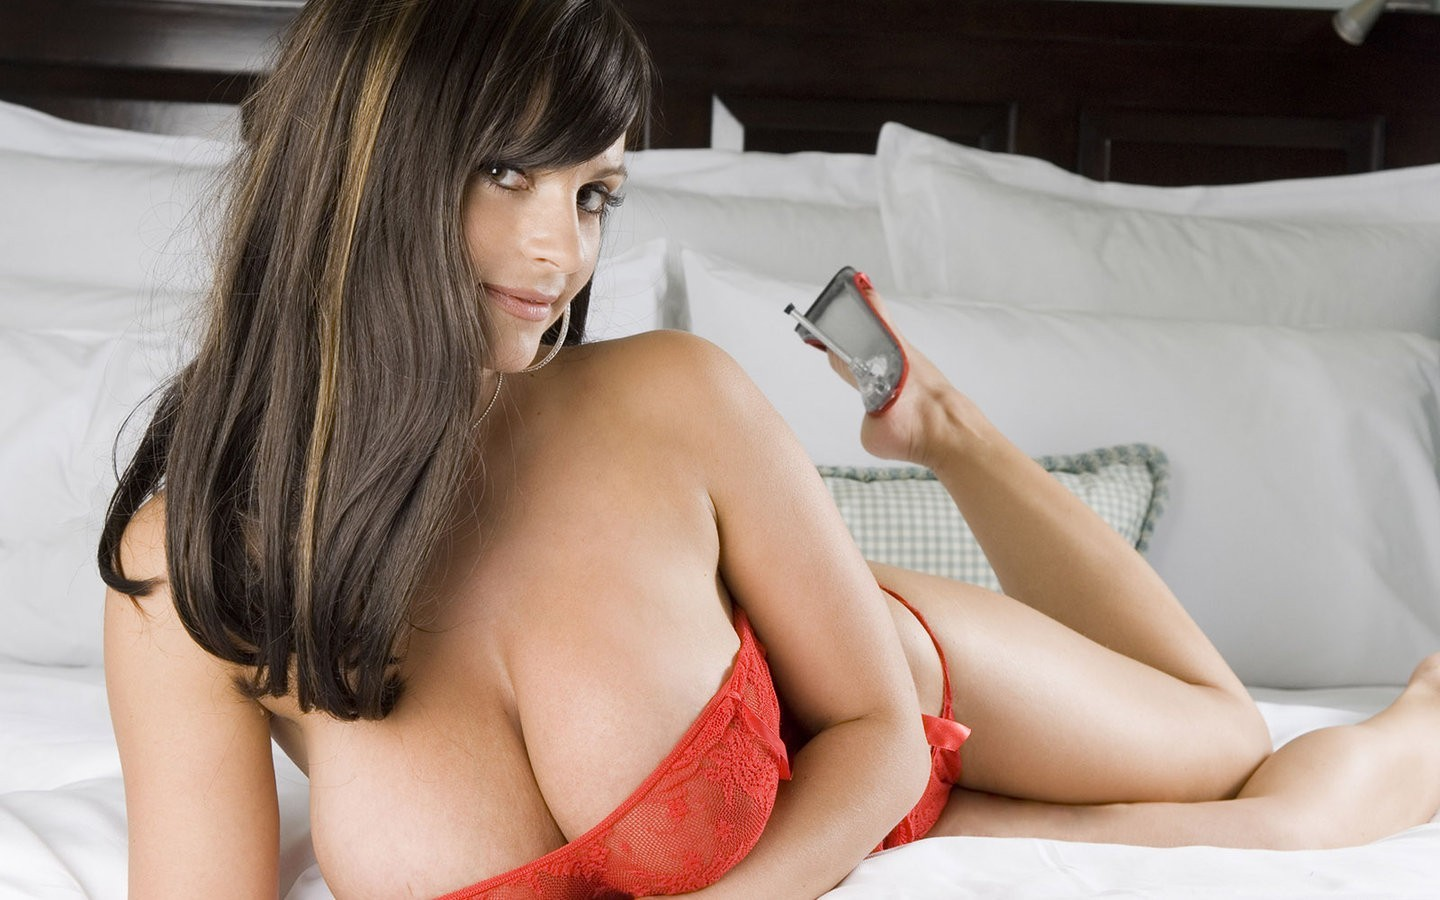 bra denise milani huge boobs red bra HD Wallpaper